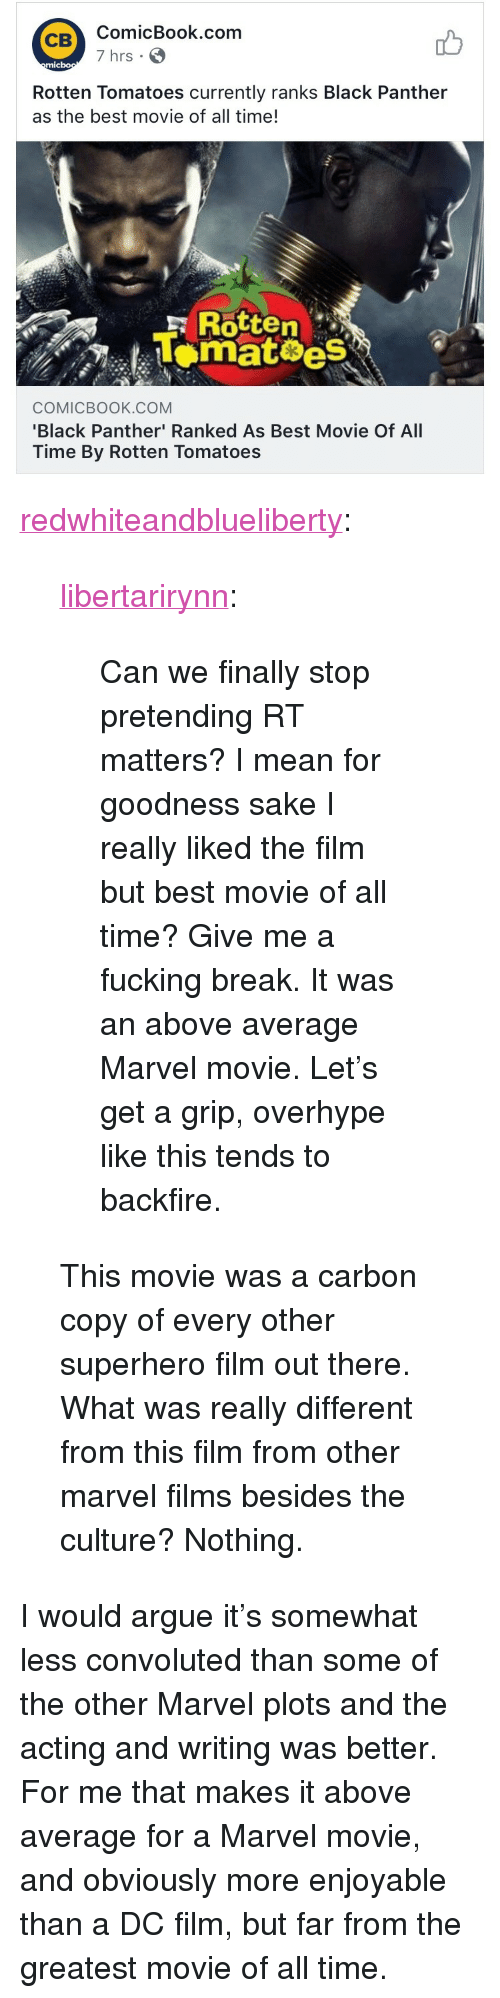 """Arguing, Fucking, and Superhero: ComicBook.com  7 hrs  CB  mic  Rotten Tomatoes currently ranks Black Panther  as the best movie of all time!  ,  F Rotten  Lomat es  COMICBOOK.cOM  Black Panther' Ranked As Best Movie Of All  Time By Rotten Tomatoes <p><a href=""""http://redwhiteandblueliberty.tumblr.com/post/171111797252/libertarirynn-can-we-finally-stop-pretending-rt"""" class=""""tumblr_blog"""">redwhiteandblueliberty</a>:</p>  <blockquote><p><a href=""""https://libertarirynn.tumblr.com/post/171111458004/can-we-finally-stop-pretending-rt-matters-i-mean"""" class=""""tumblr_blog"""">libertarirynn</a>:</p>  <blockquote><p>Can we finally stop pretending RT matters? I mean for goodness sake I really liked the film but best movie of all time? Give me a fucking break. It was an above average Marvel movie. Let's get a grip, overhype like this tends to backfire.</p></blockquote>  <p>This movie was a carbon copy of every other superhero film out there. What was really different from this film from other marvel films besides the culture? Nothing. </p></blockquote>  <p>I would argue it's somewhat less convoluted than some of the other Marvel plots and the acting and writing was better. For me that makes it above average for a Marvel movie, and obviously more enjoyable than a DC film, but far from the greatest movie of all time.</p>"""